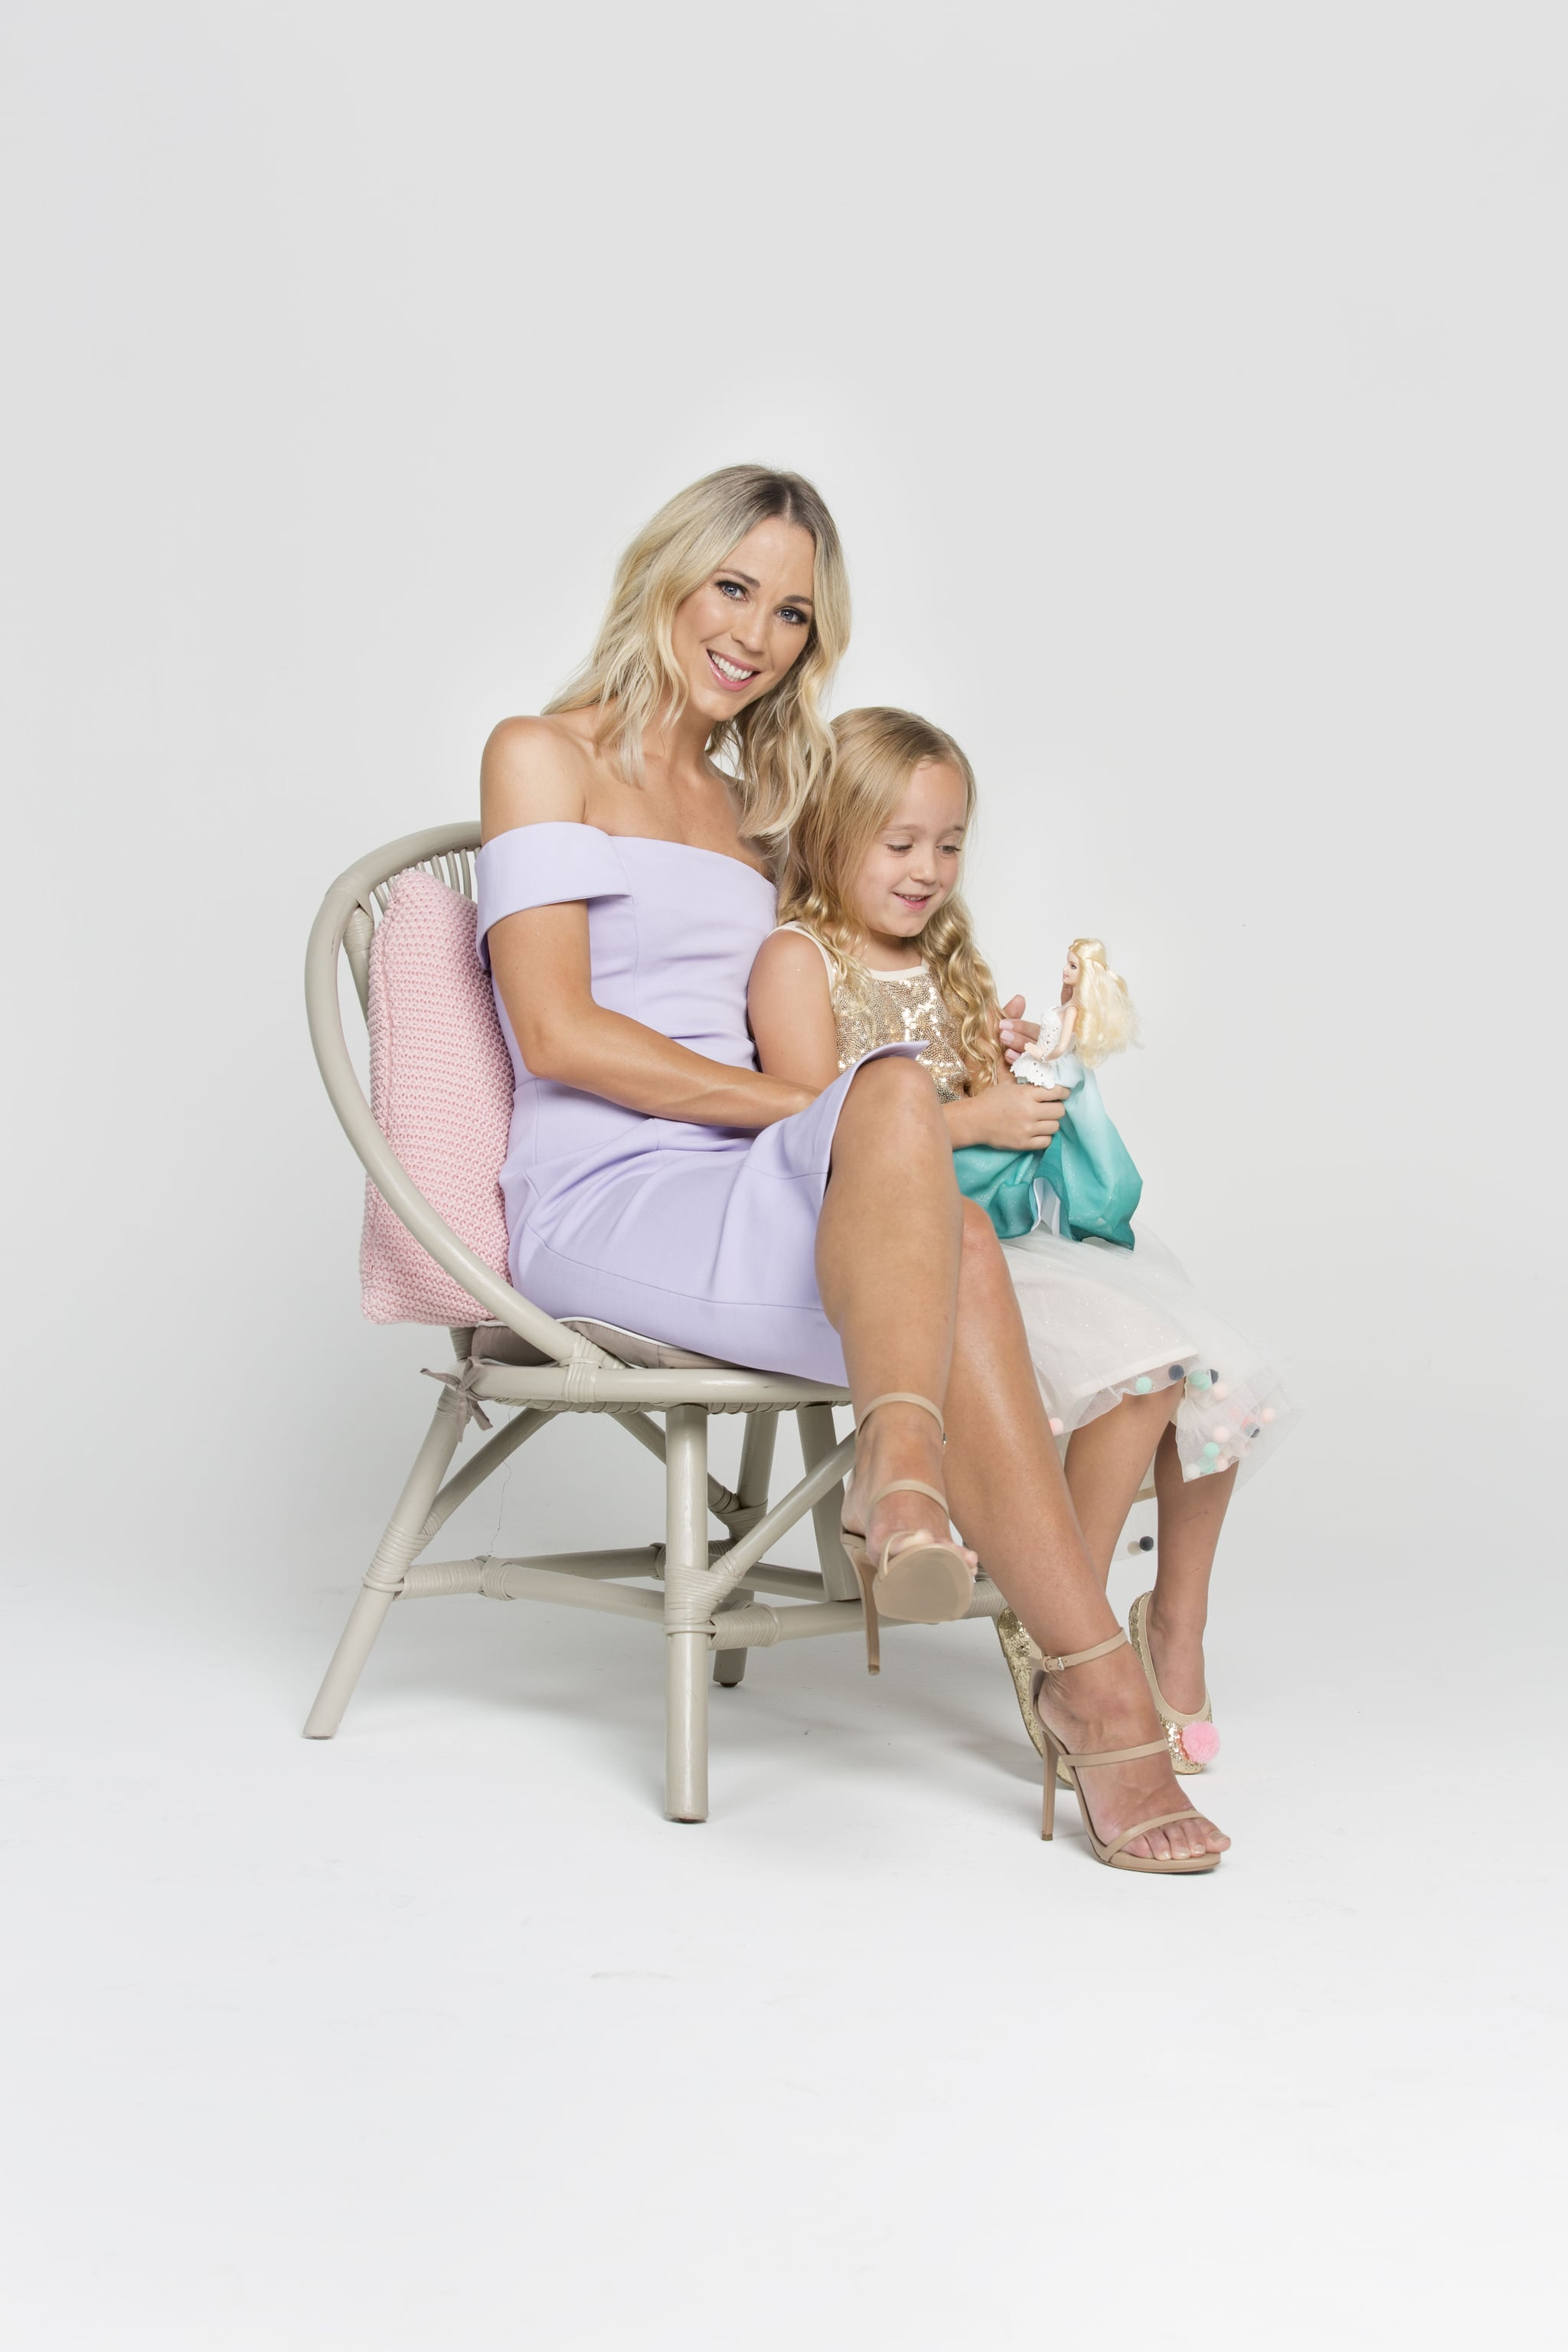 POPSUGAR Australia: How does one become the face of Barbie ...